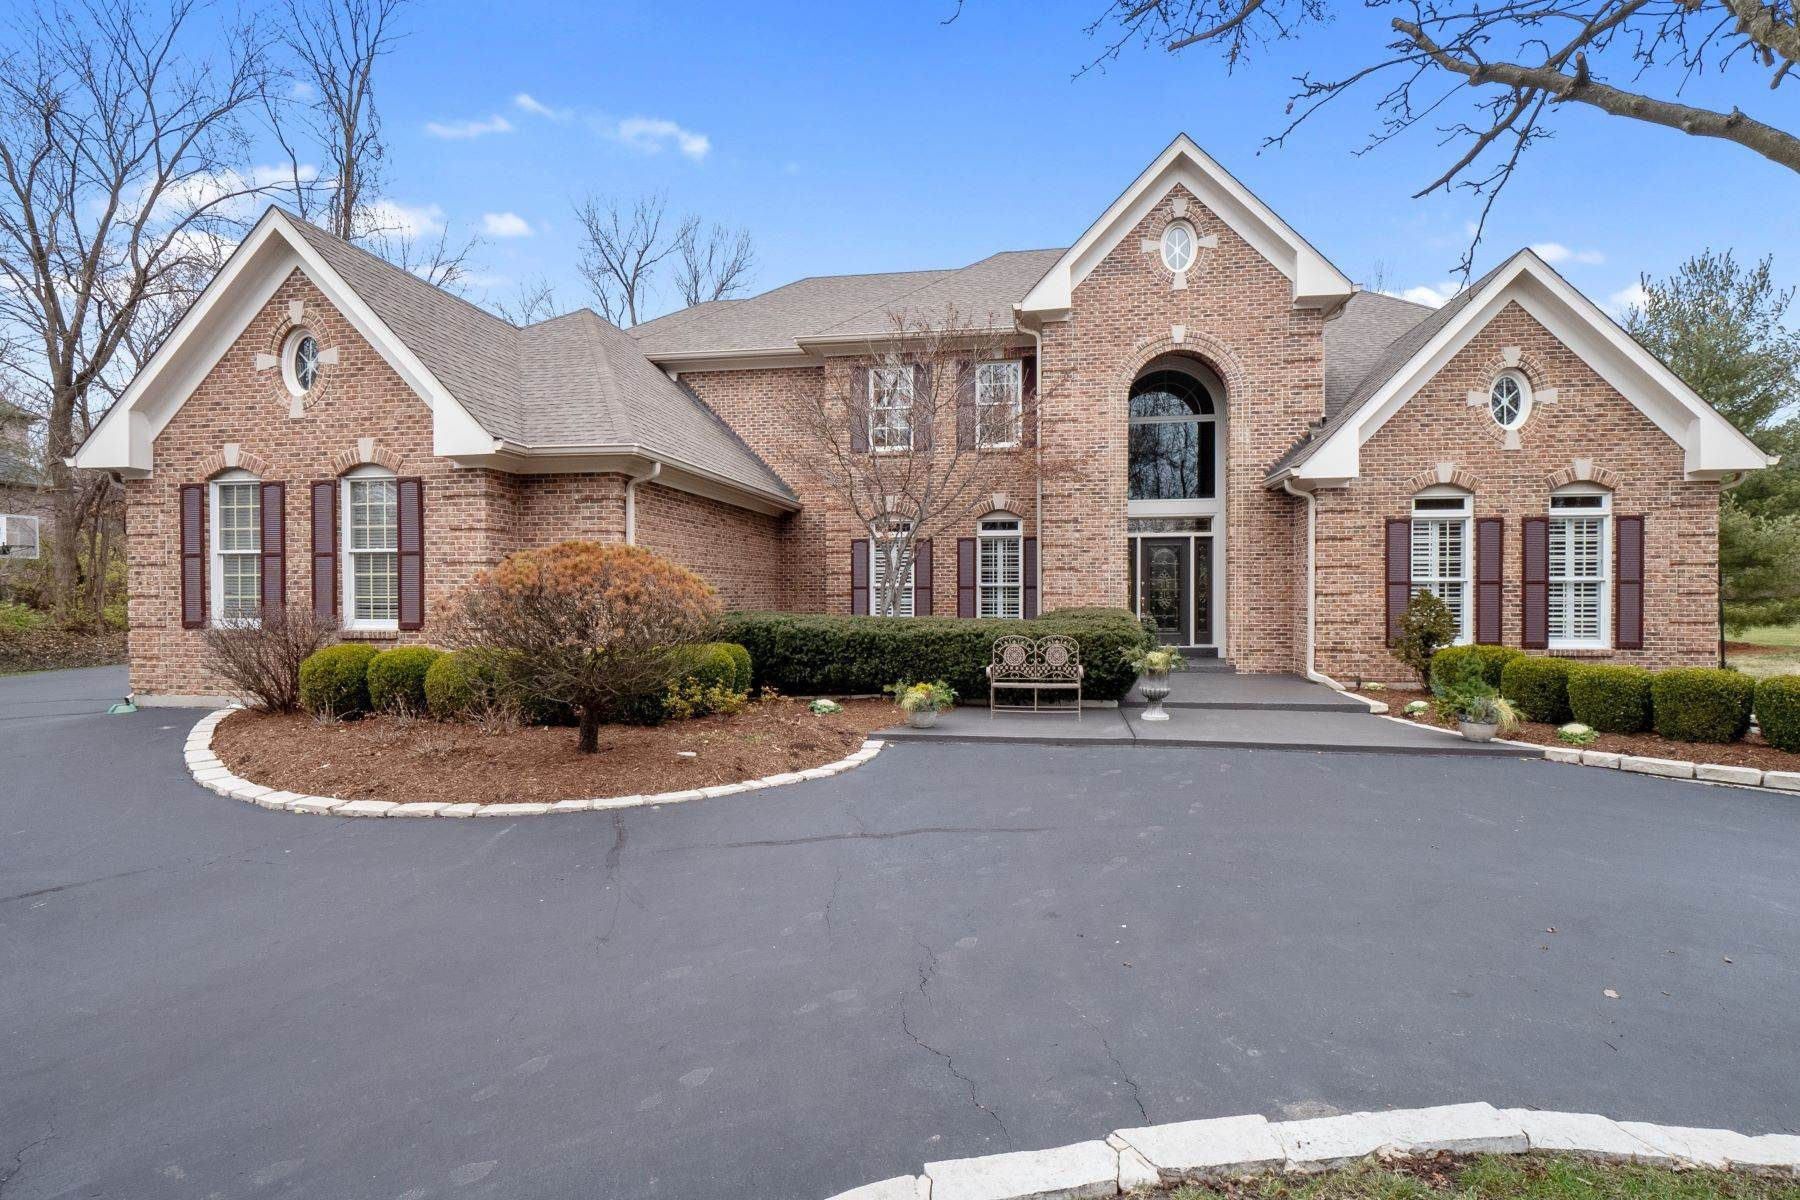 Single Family Homes for Sale at Newer Creve Coeur Home On A Private Cul-De-Sac 11339 Mosley Forest Drive, Creve Coeur, Missouri 63141 United States